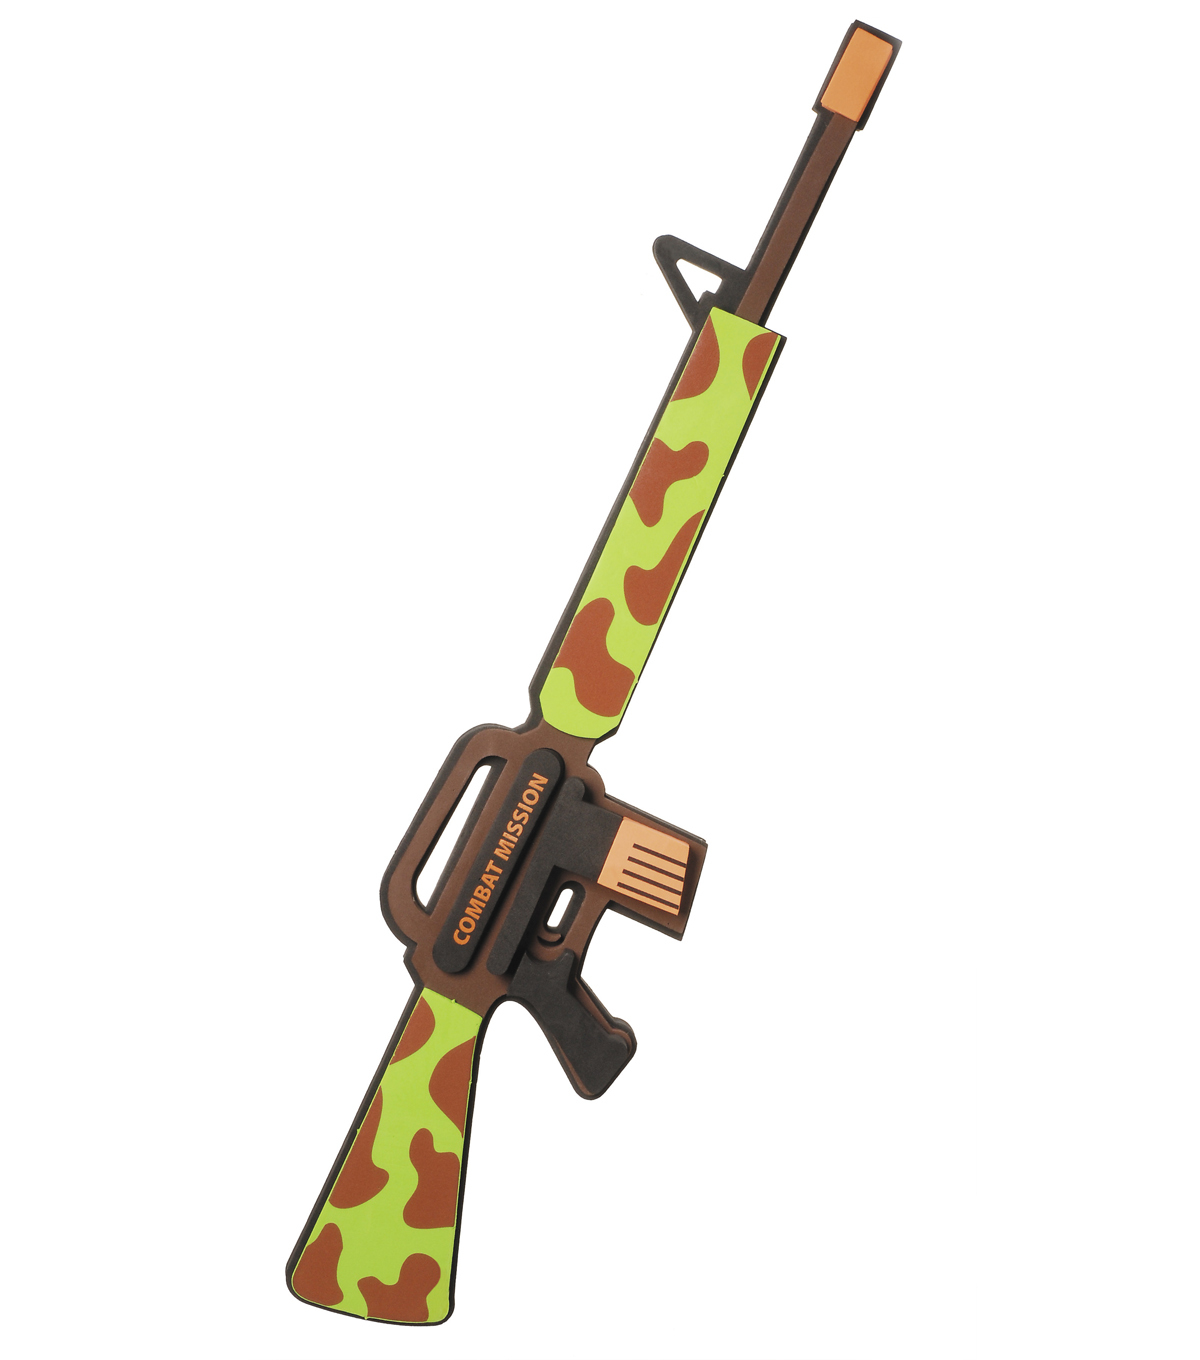 All Foam Toy Army Rifle with Camouflage Design